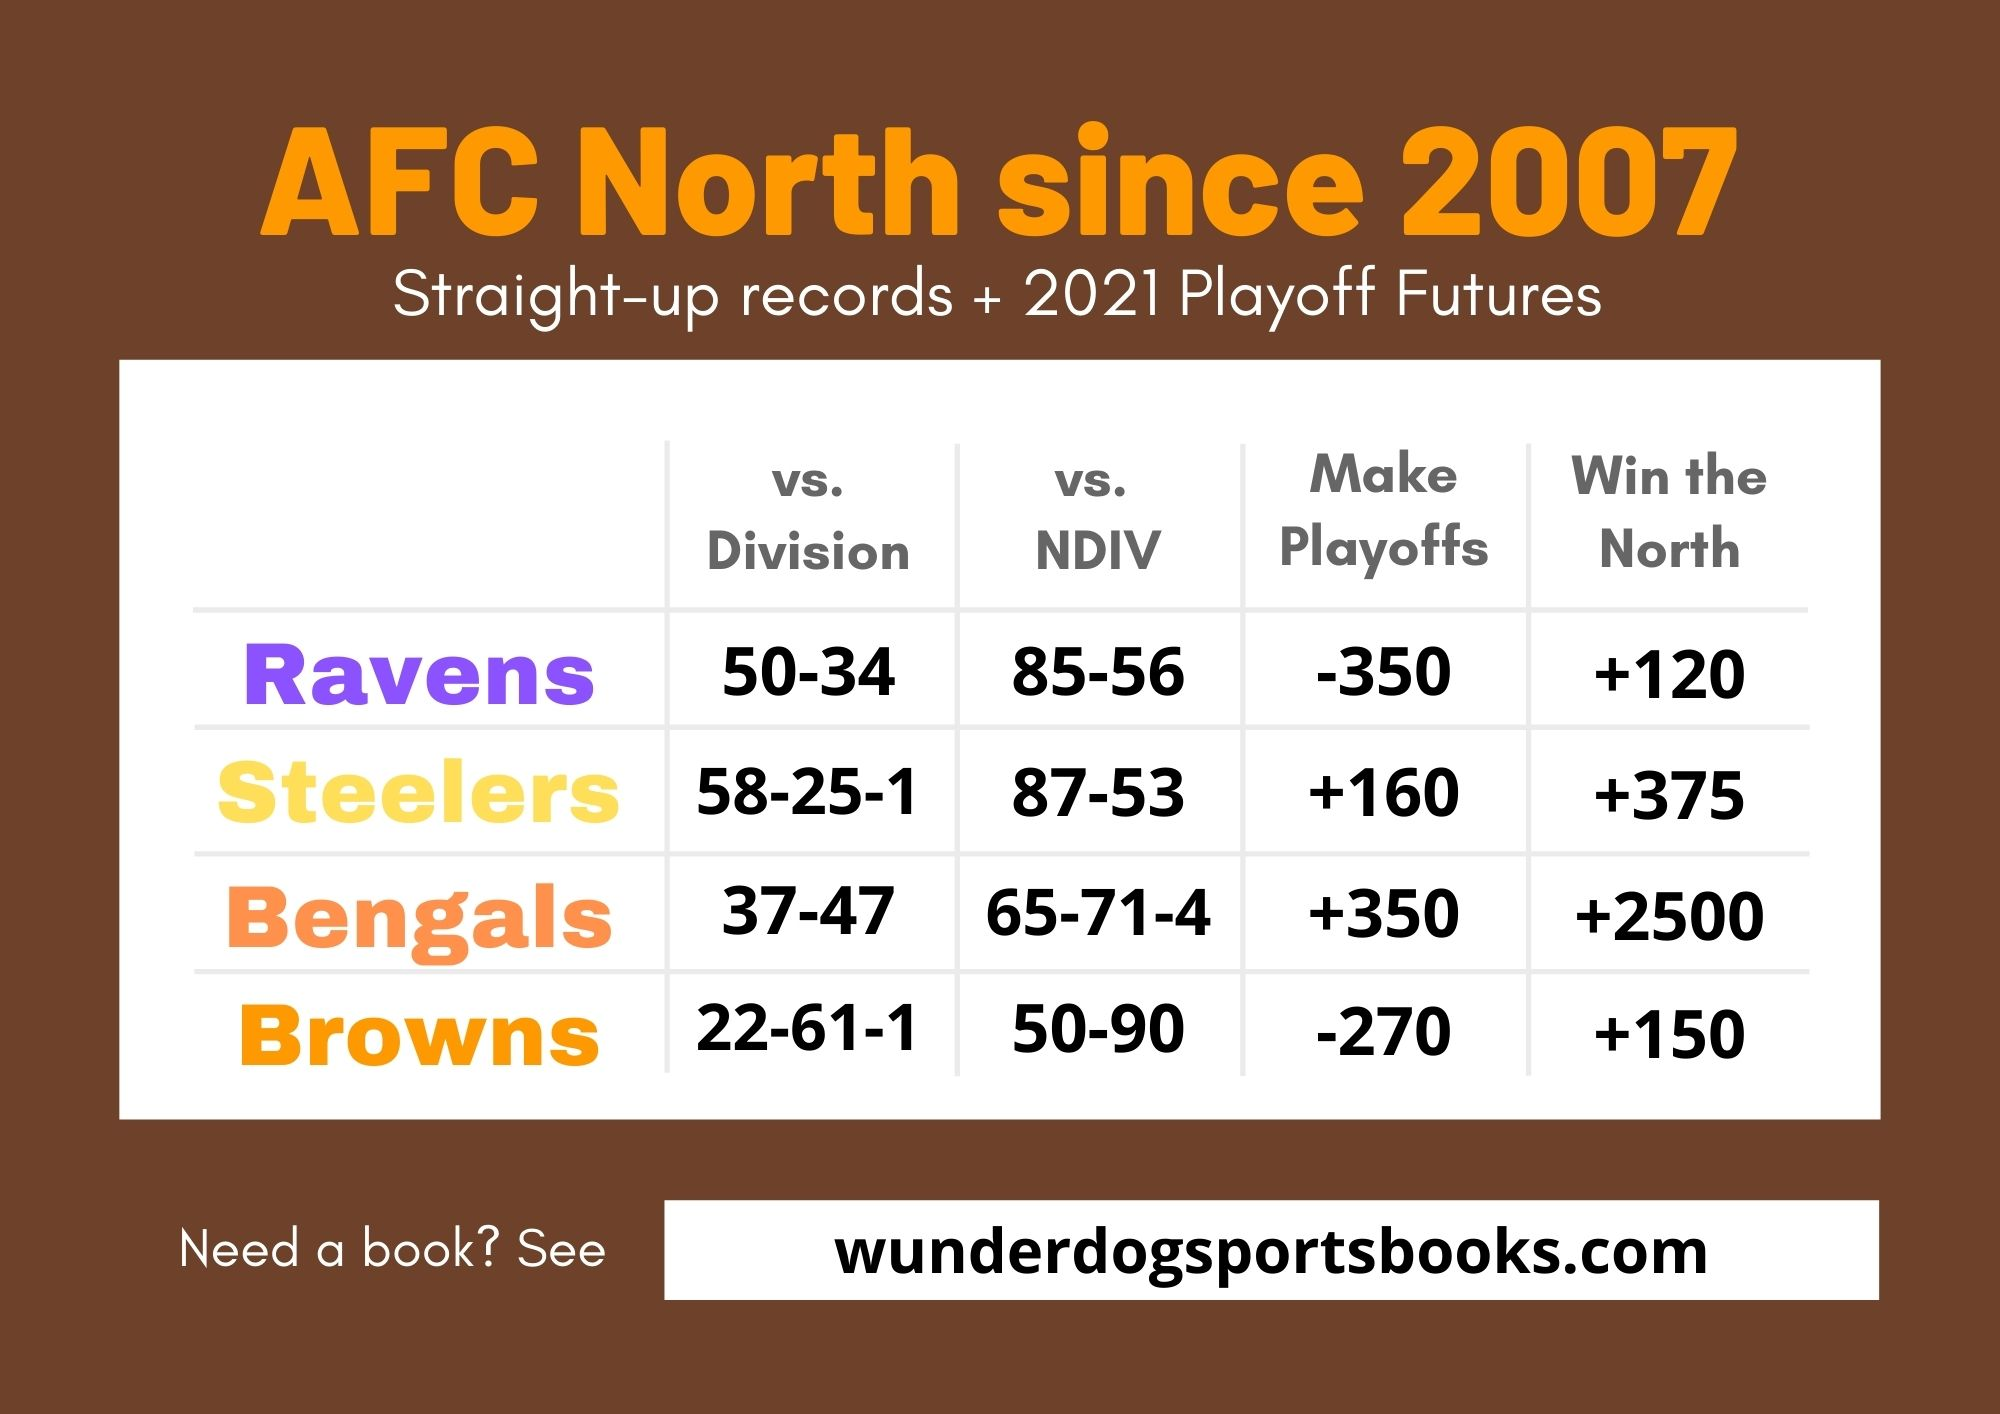 Odds for betting the browns to win the AFC North division and make playoffs